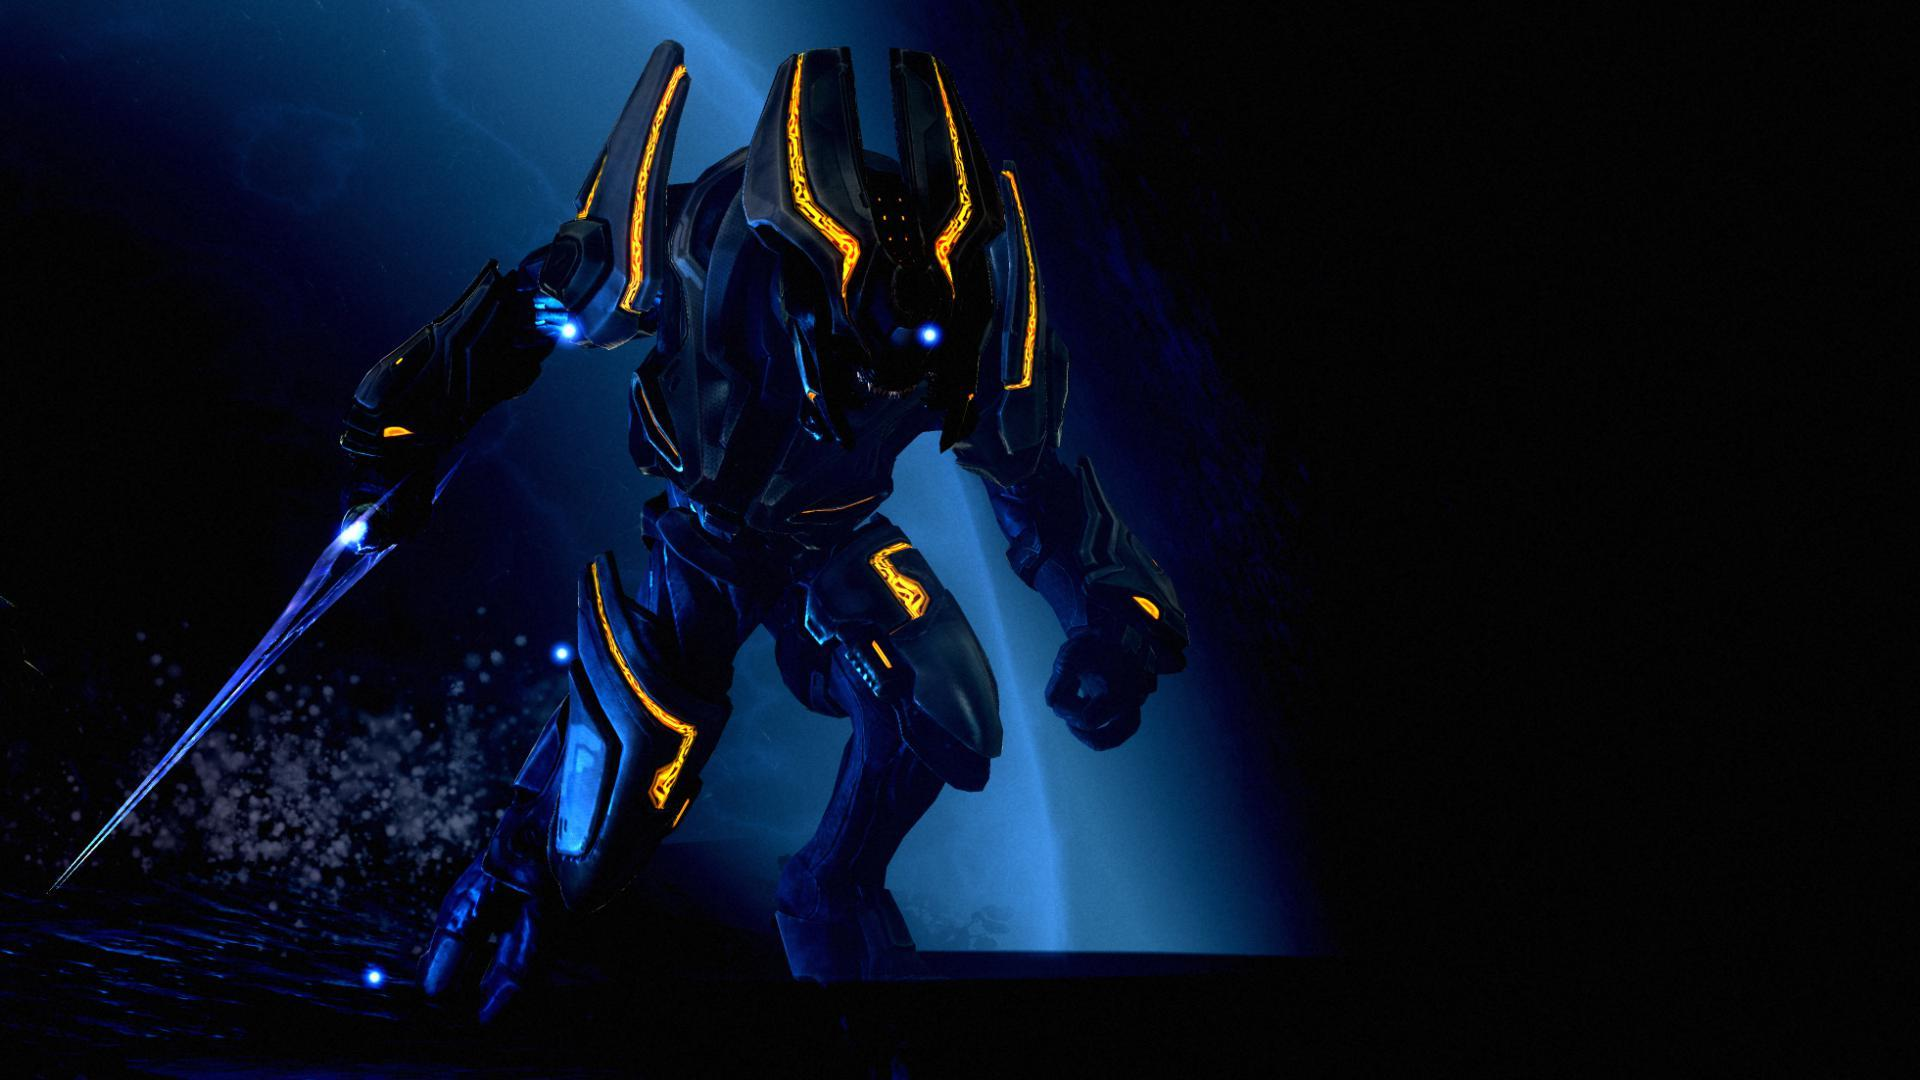 halo sangheili swords best widescreen background awesome b8KI 1920x1080